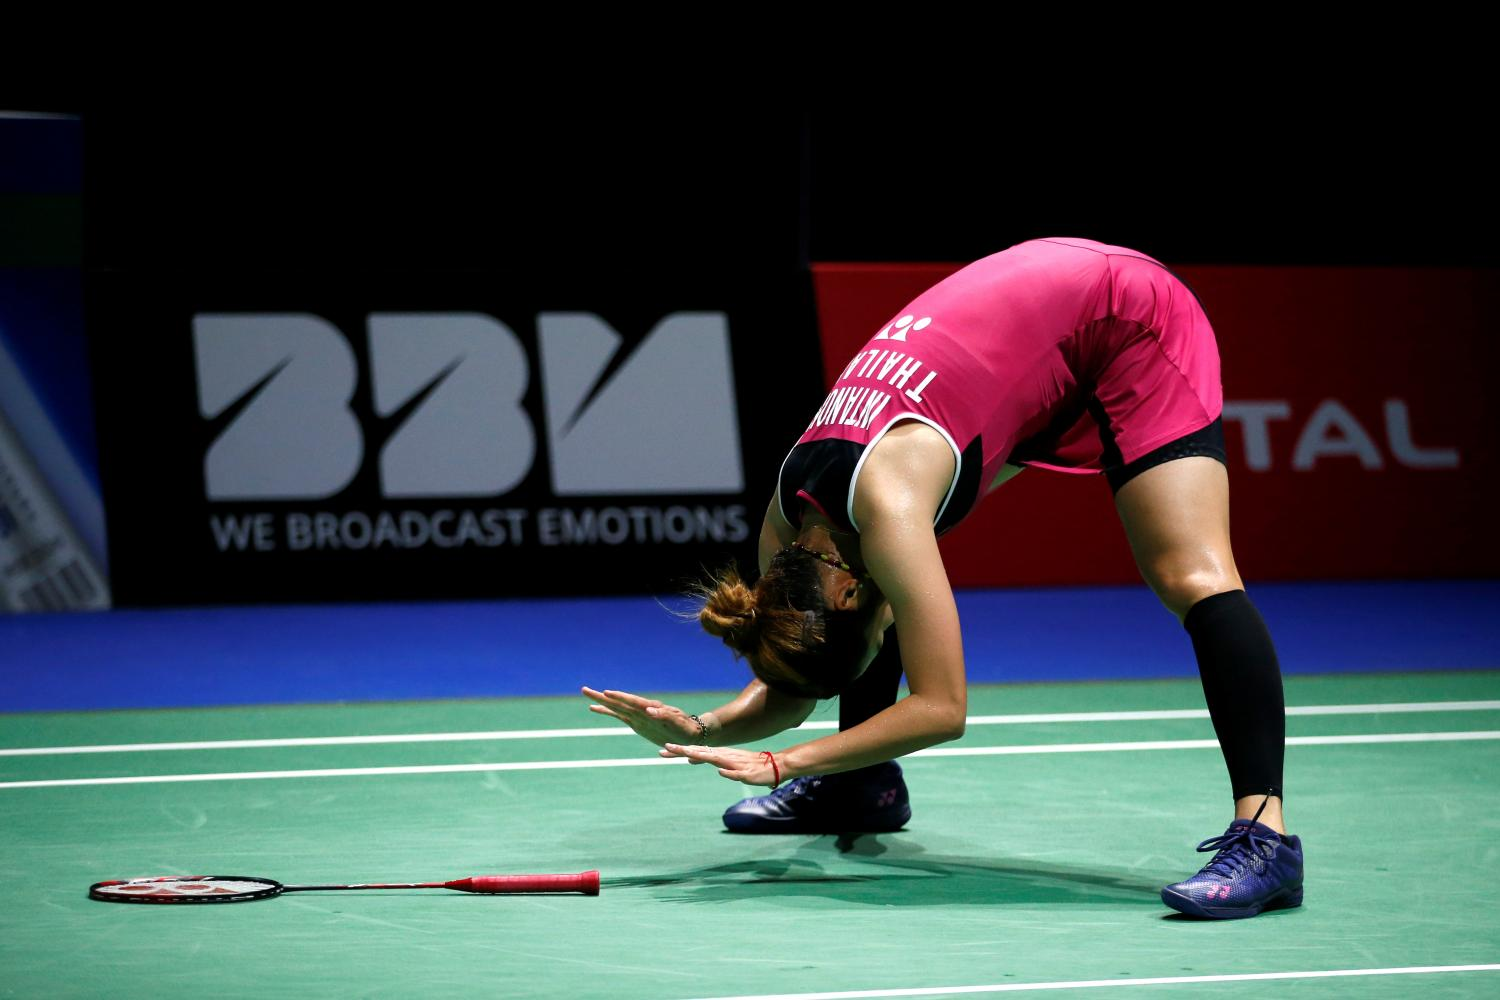 Ratchanok Intanon rues a missed chance. (Reuters photo)